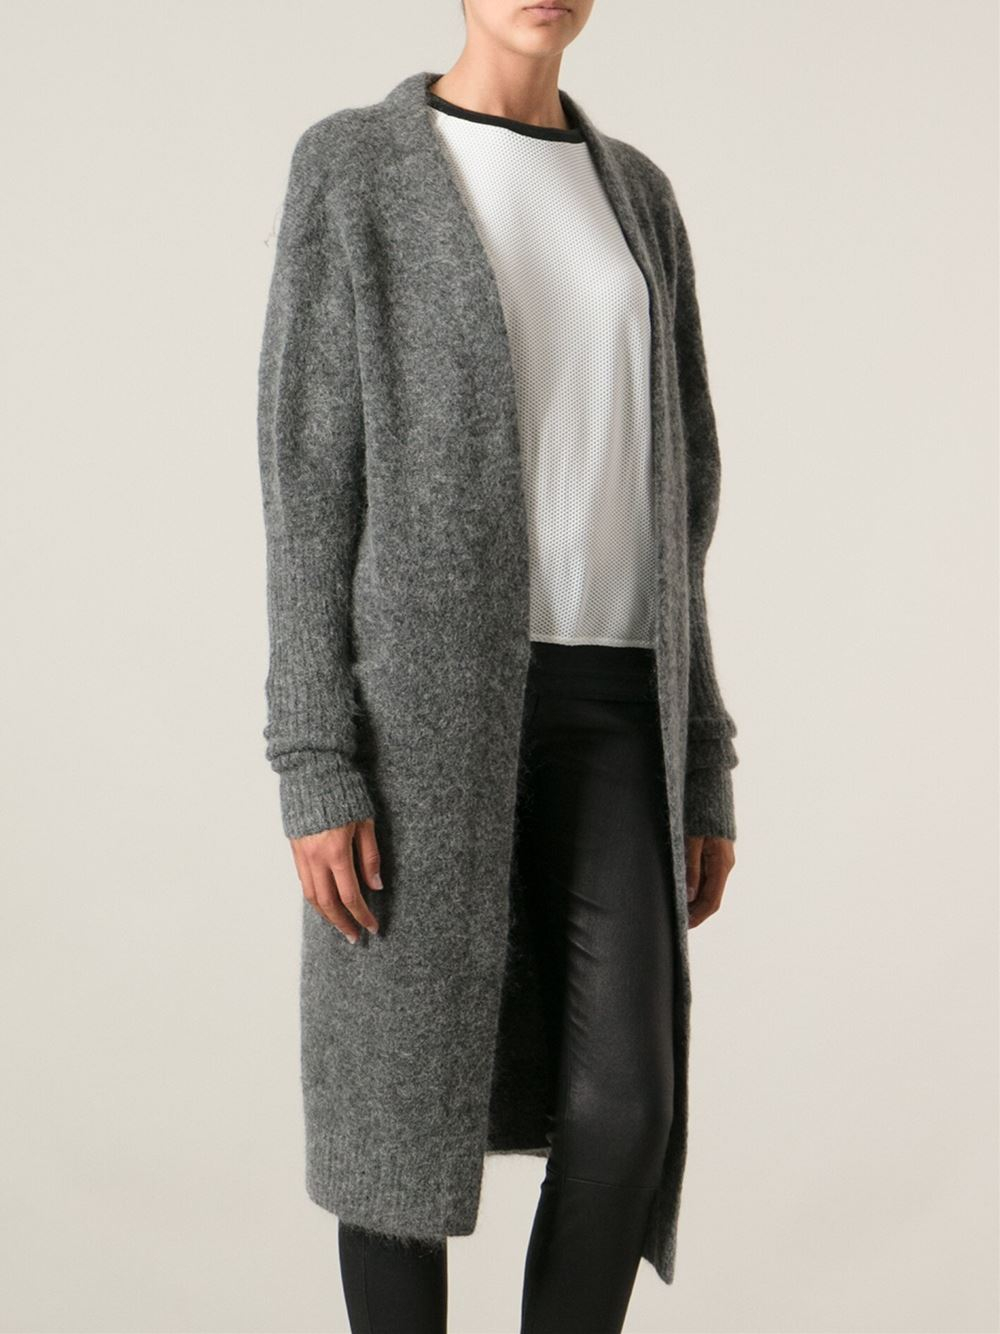 Acne studios 'Raya' Long Cardigan in Gray | Lyst